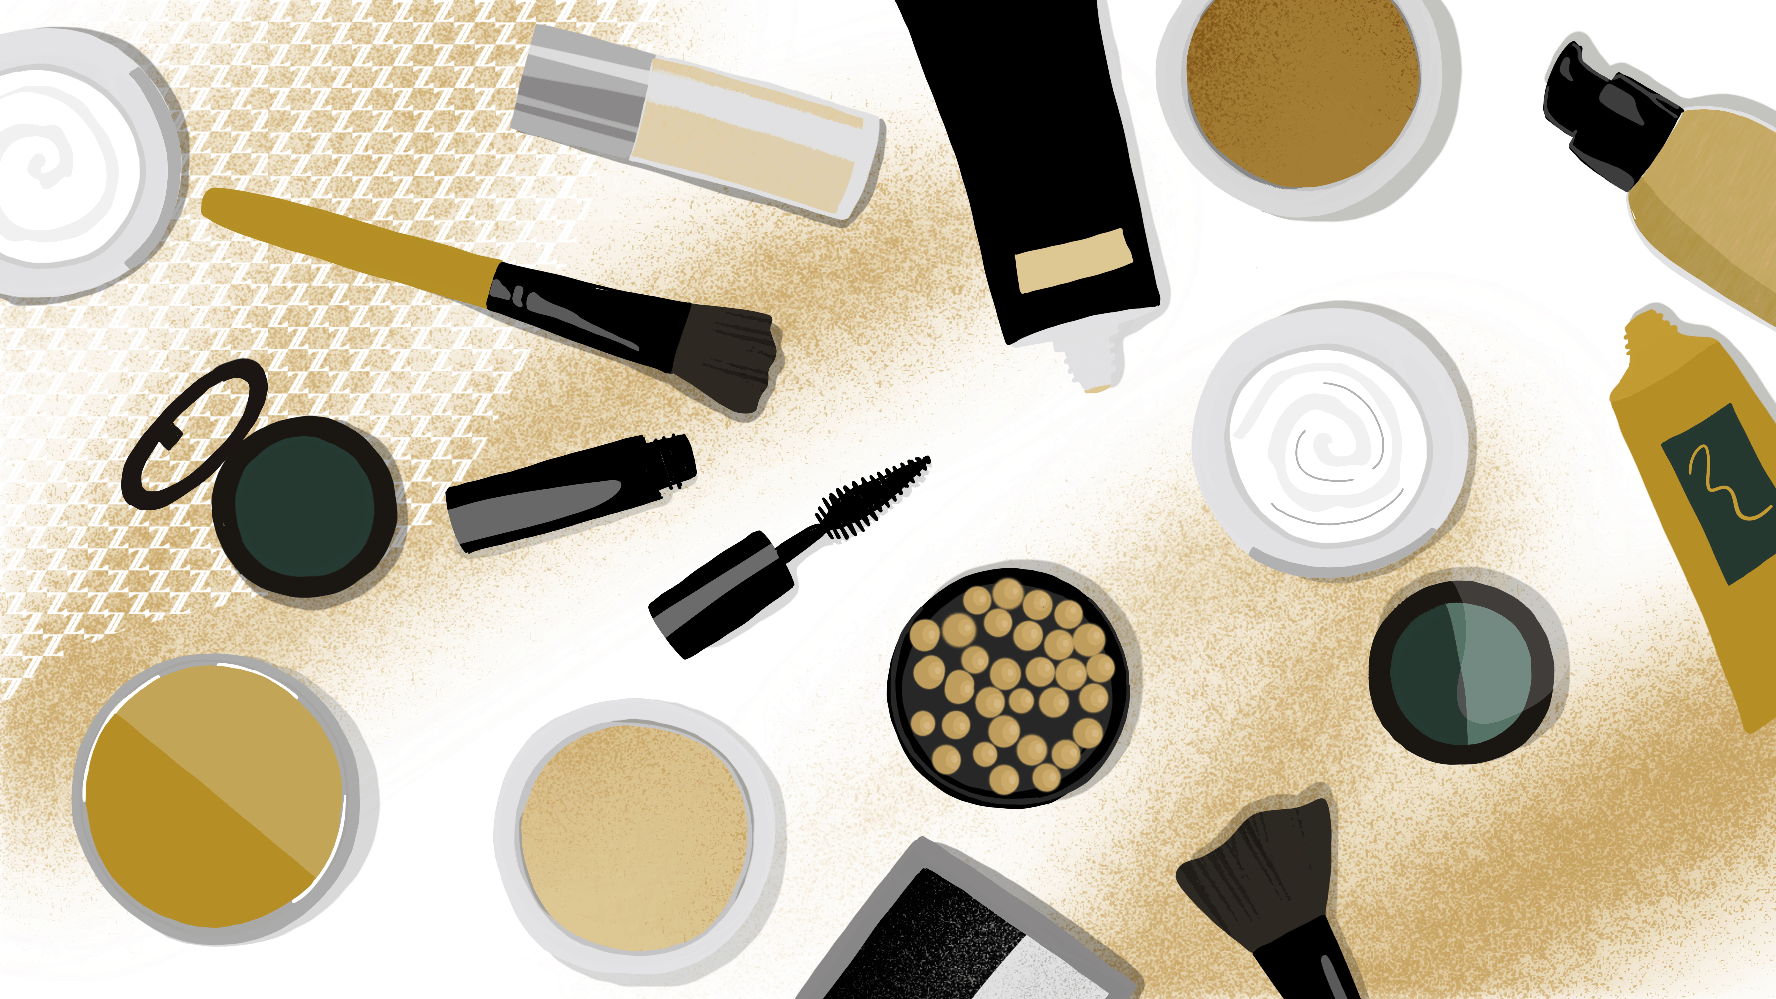 Heavy application of moisturizer, sunscreen or makeup[3]